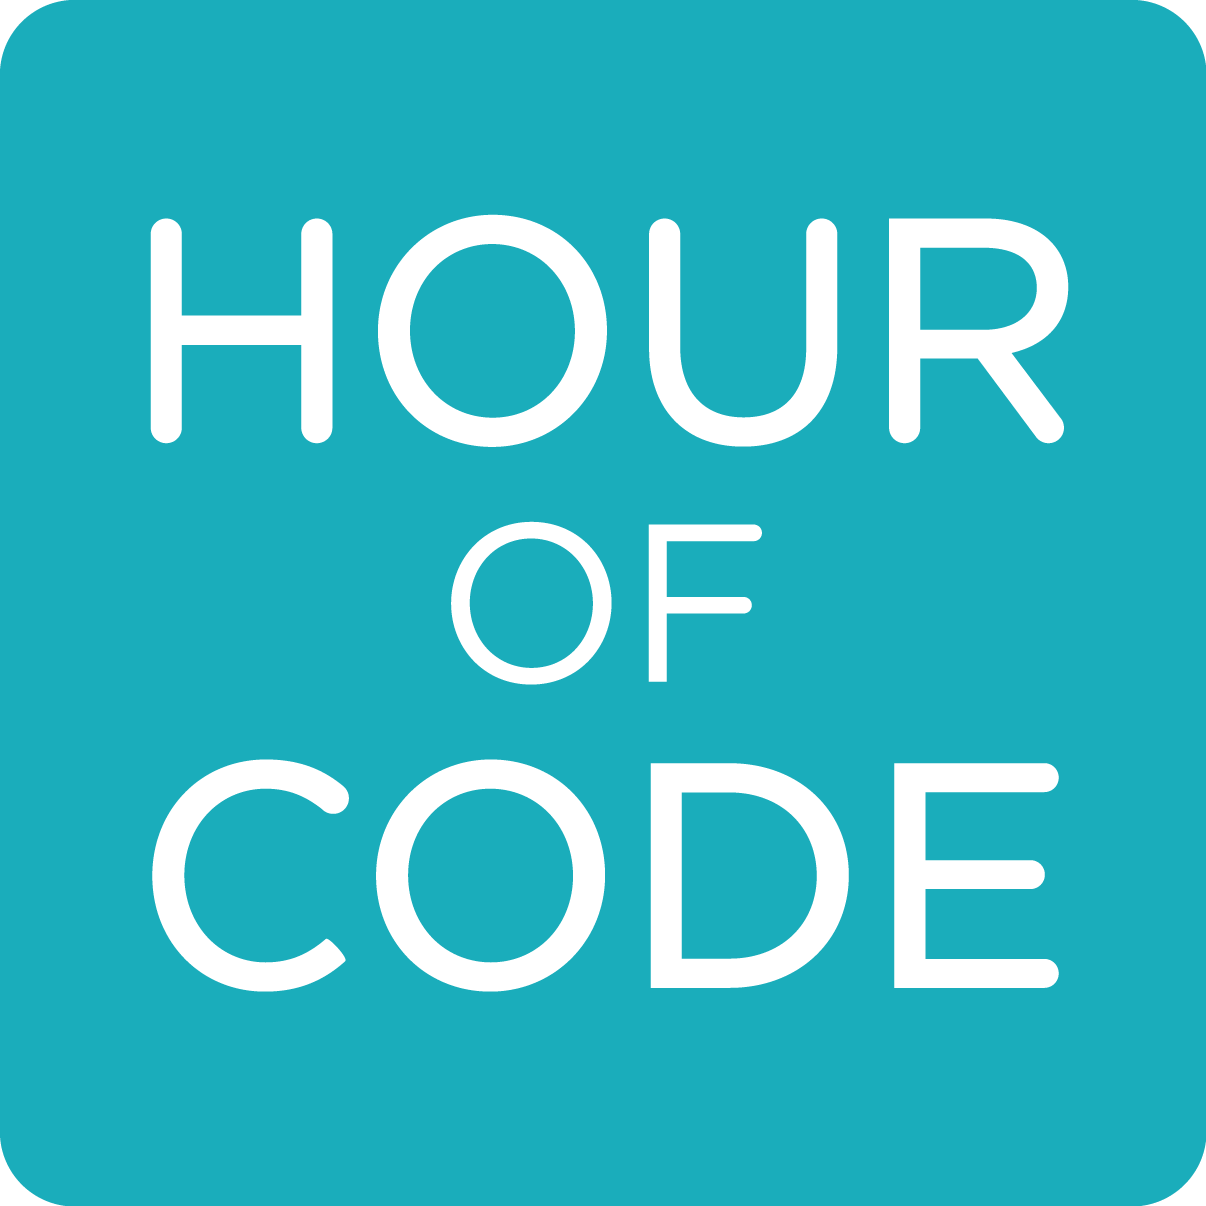 Image of Hour of Code logo